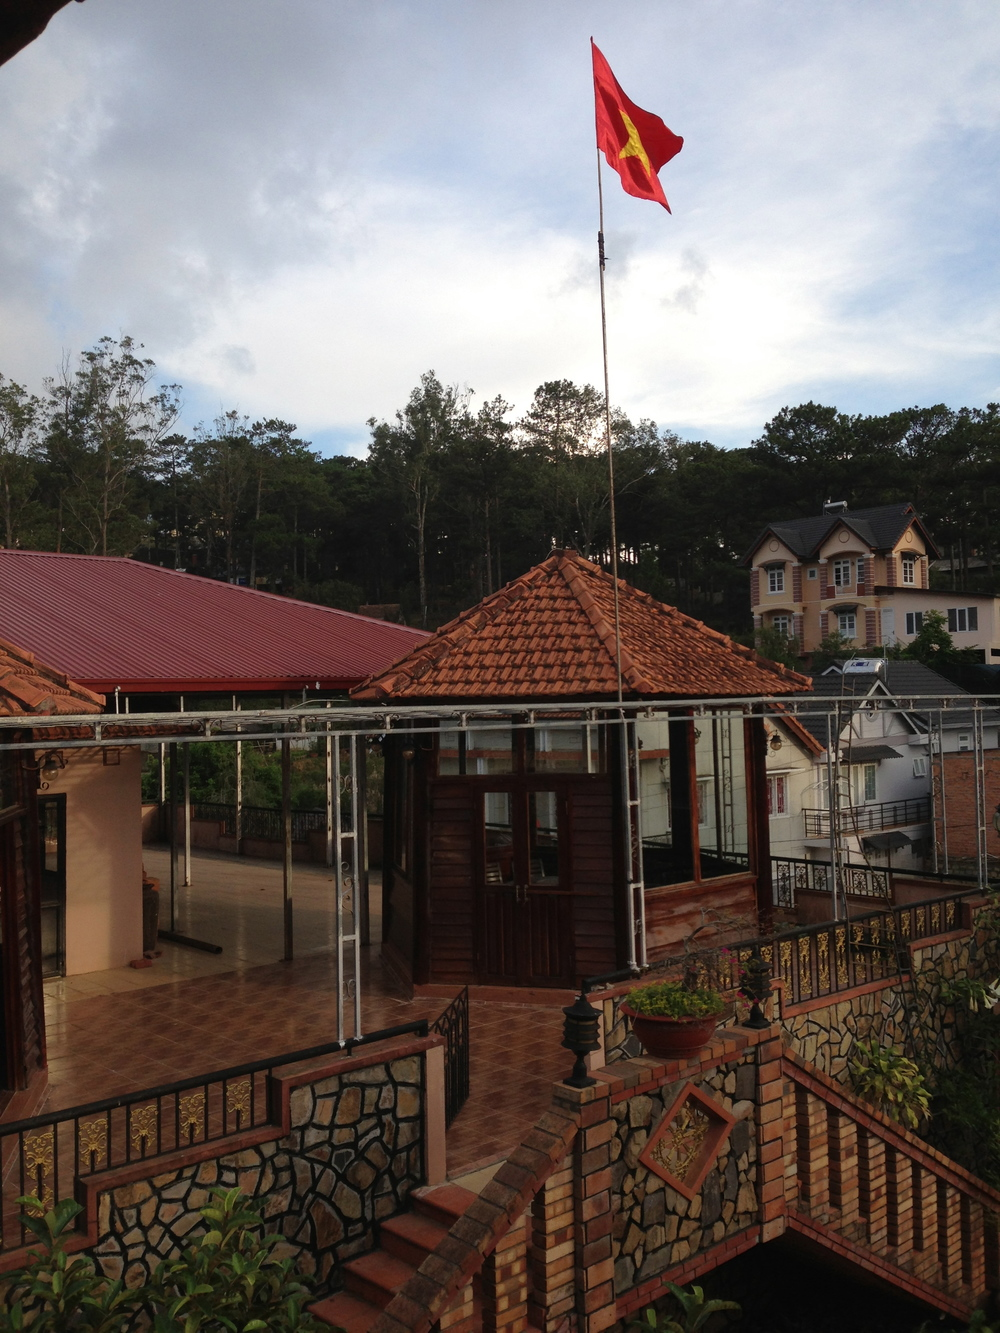 The Dalat Fortress, my abode for the last three months. Rooftop dining rooms made for great sample roasting a cupping areas.